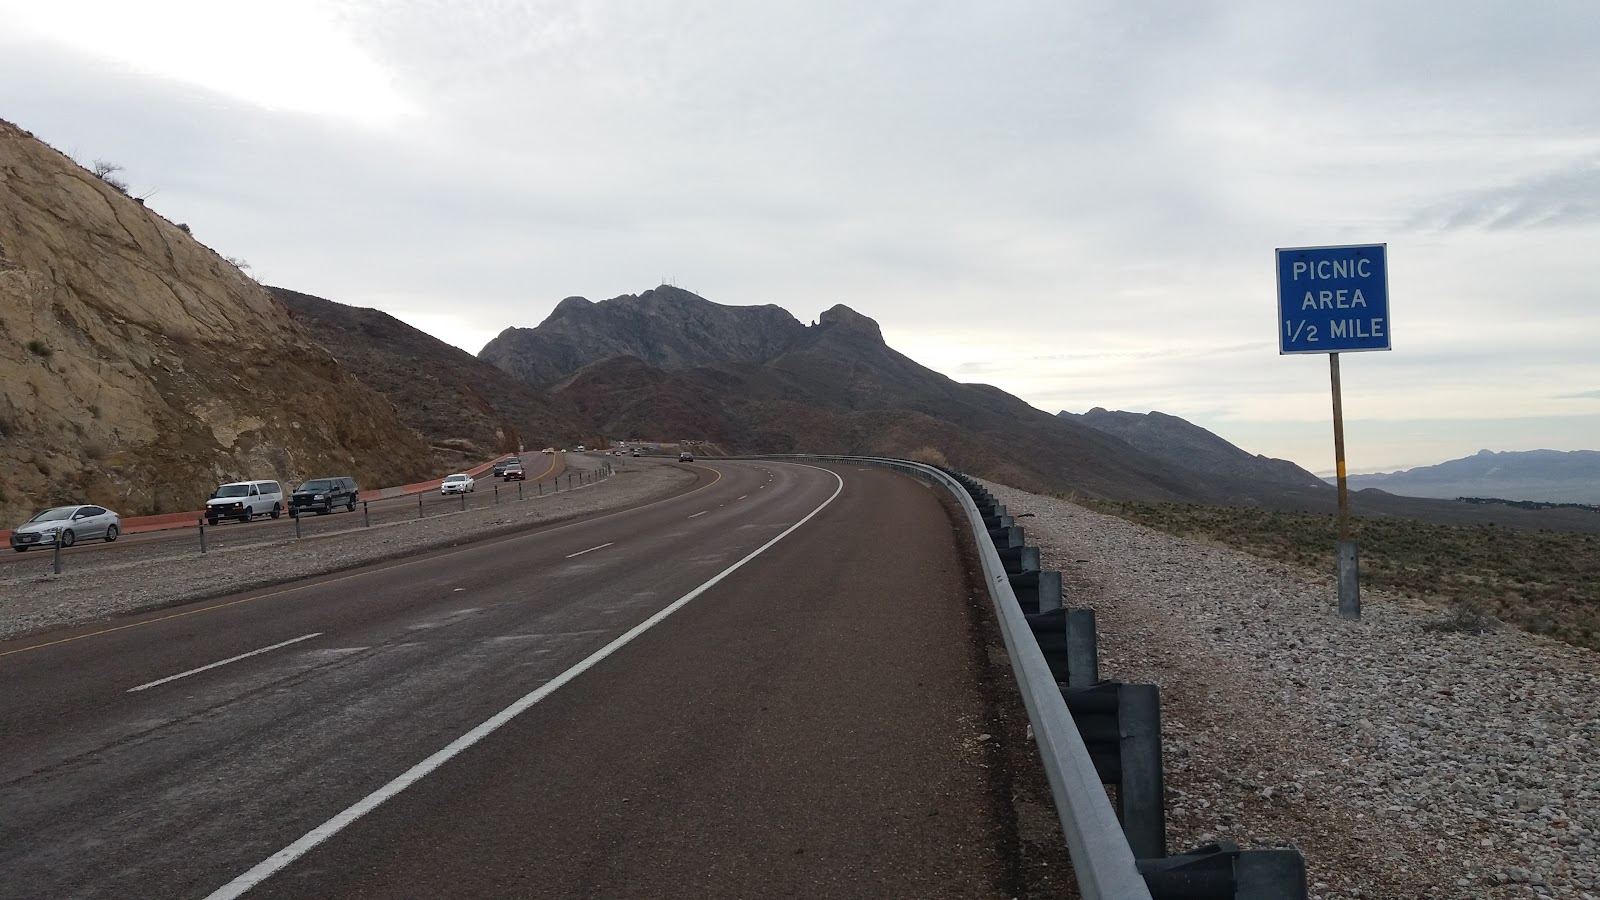 Bicycle ride Smugglers Pass West - Transmountain Drive - rumble strips, roadway, shoulder